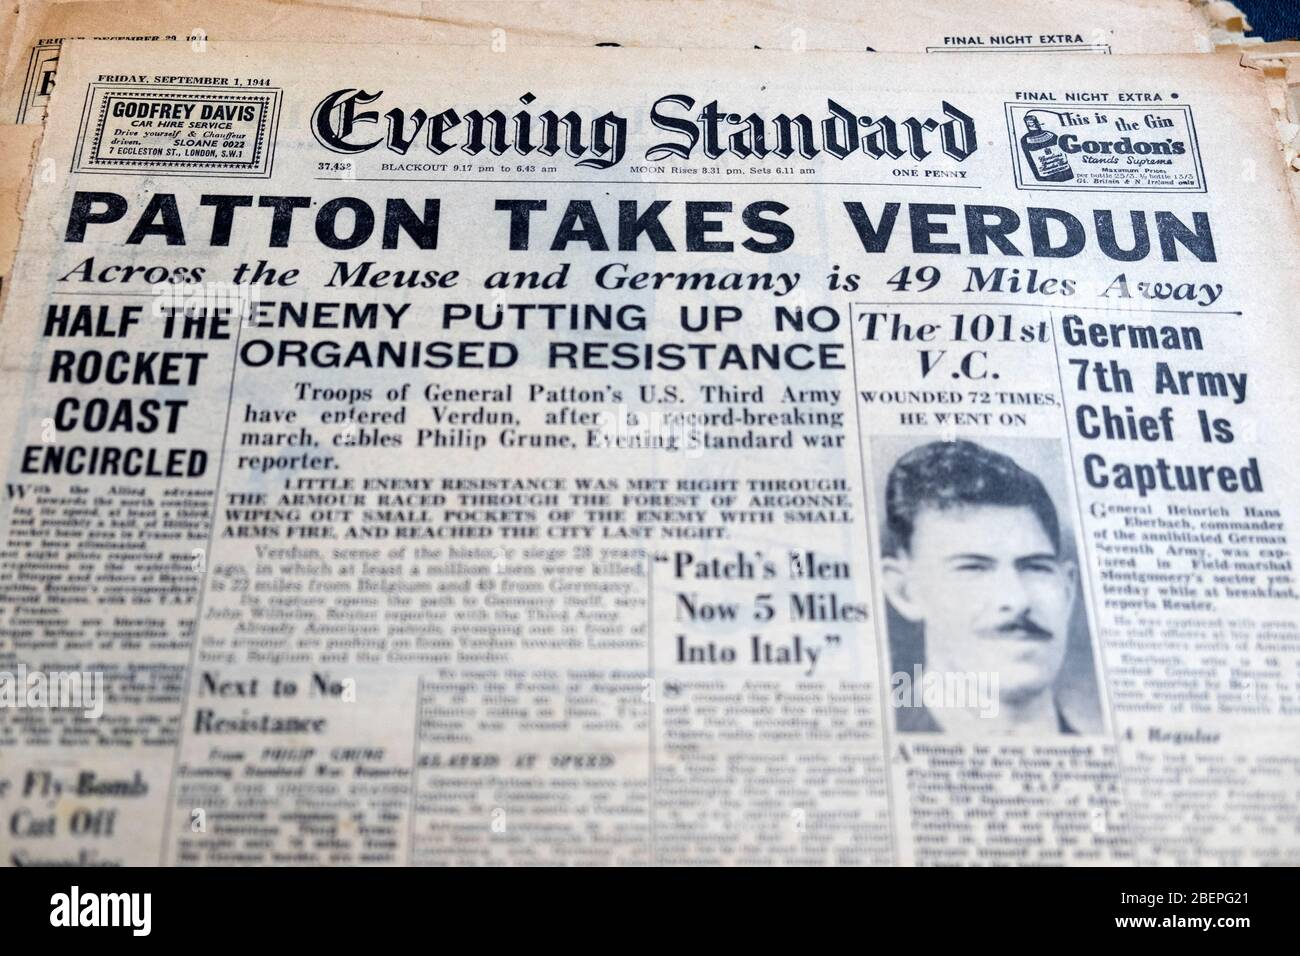 "Evening Standard WWII British newspaper headline 1 September 1944 ""Patton Takes Verdun"" across the Meuse and Germany is 49 Miles Away Stock Photo"